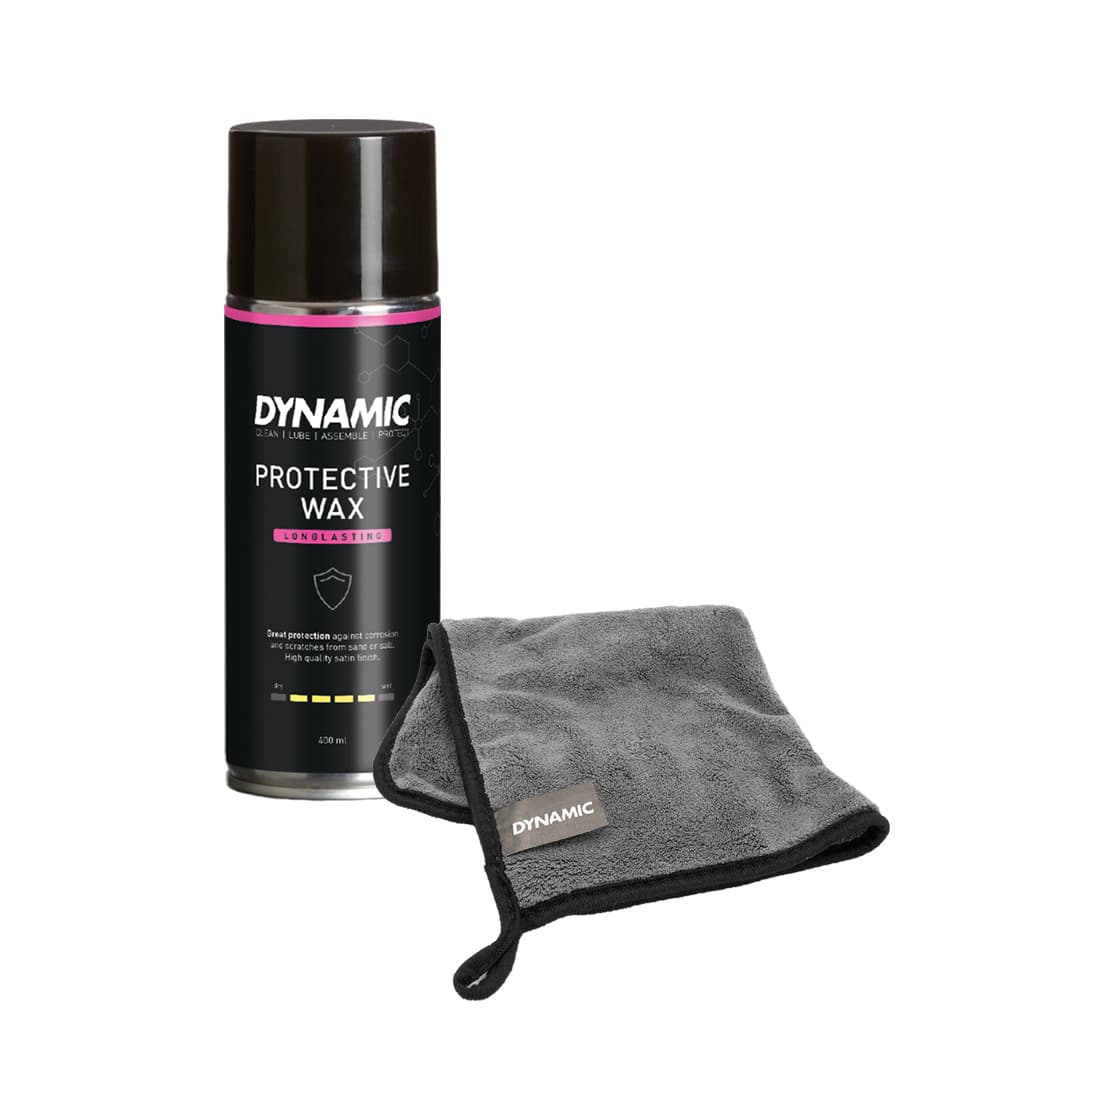 Protective Wax and polishing cloth for bikes from dynamic bike care